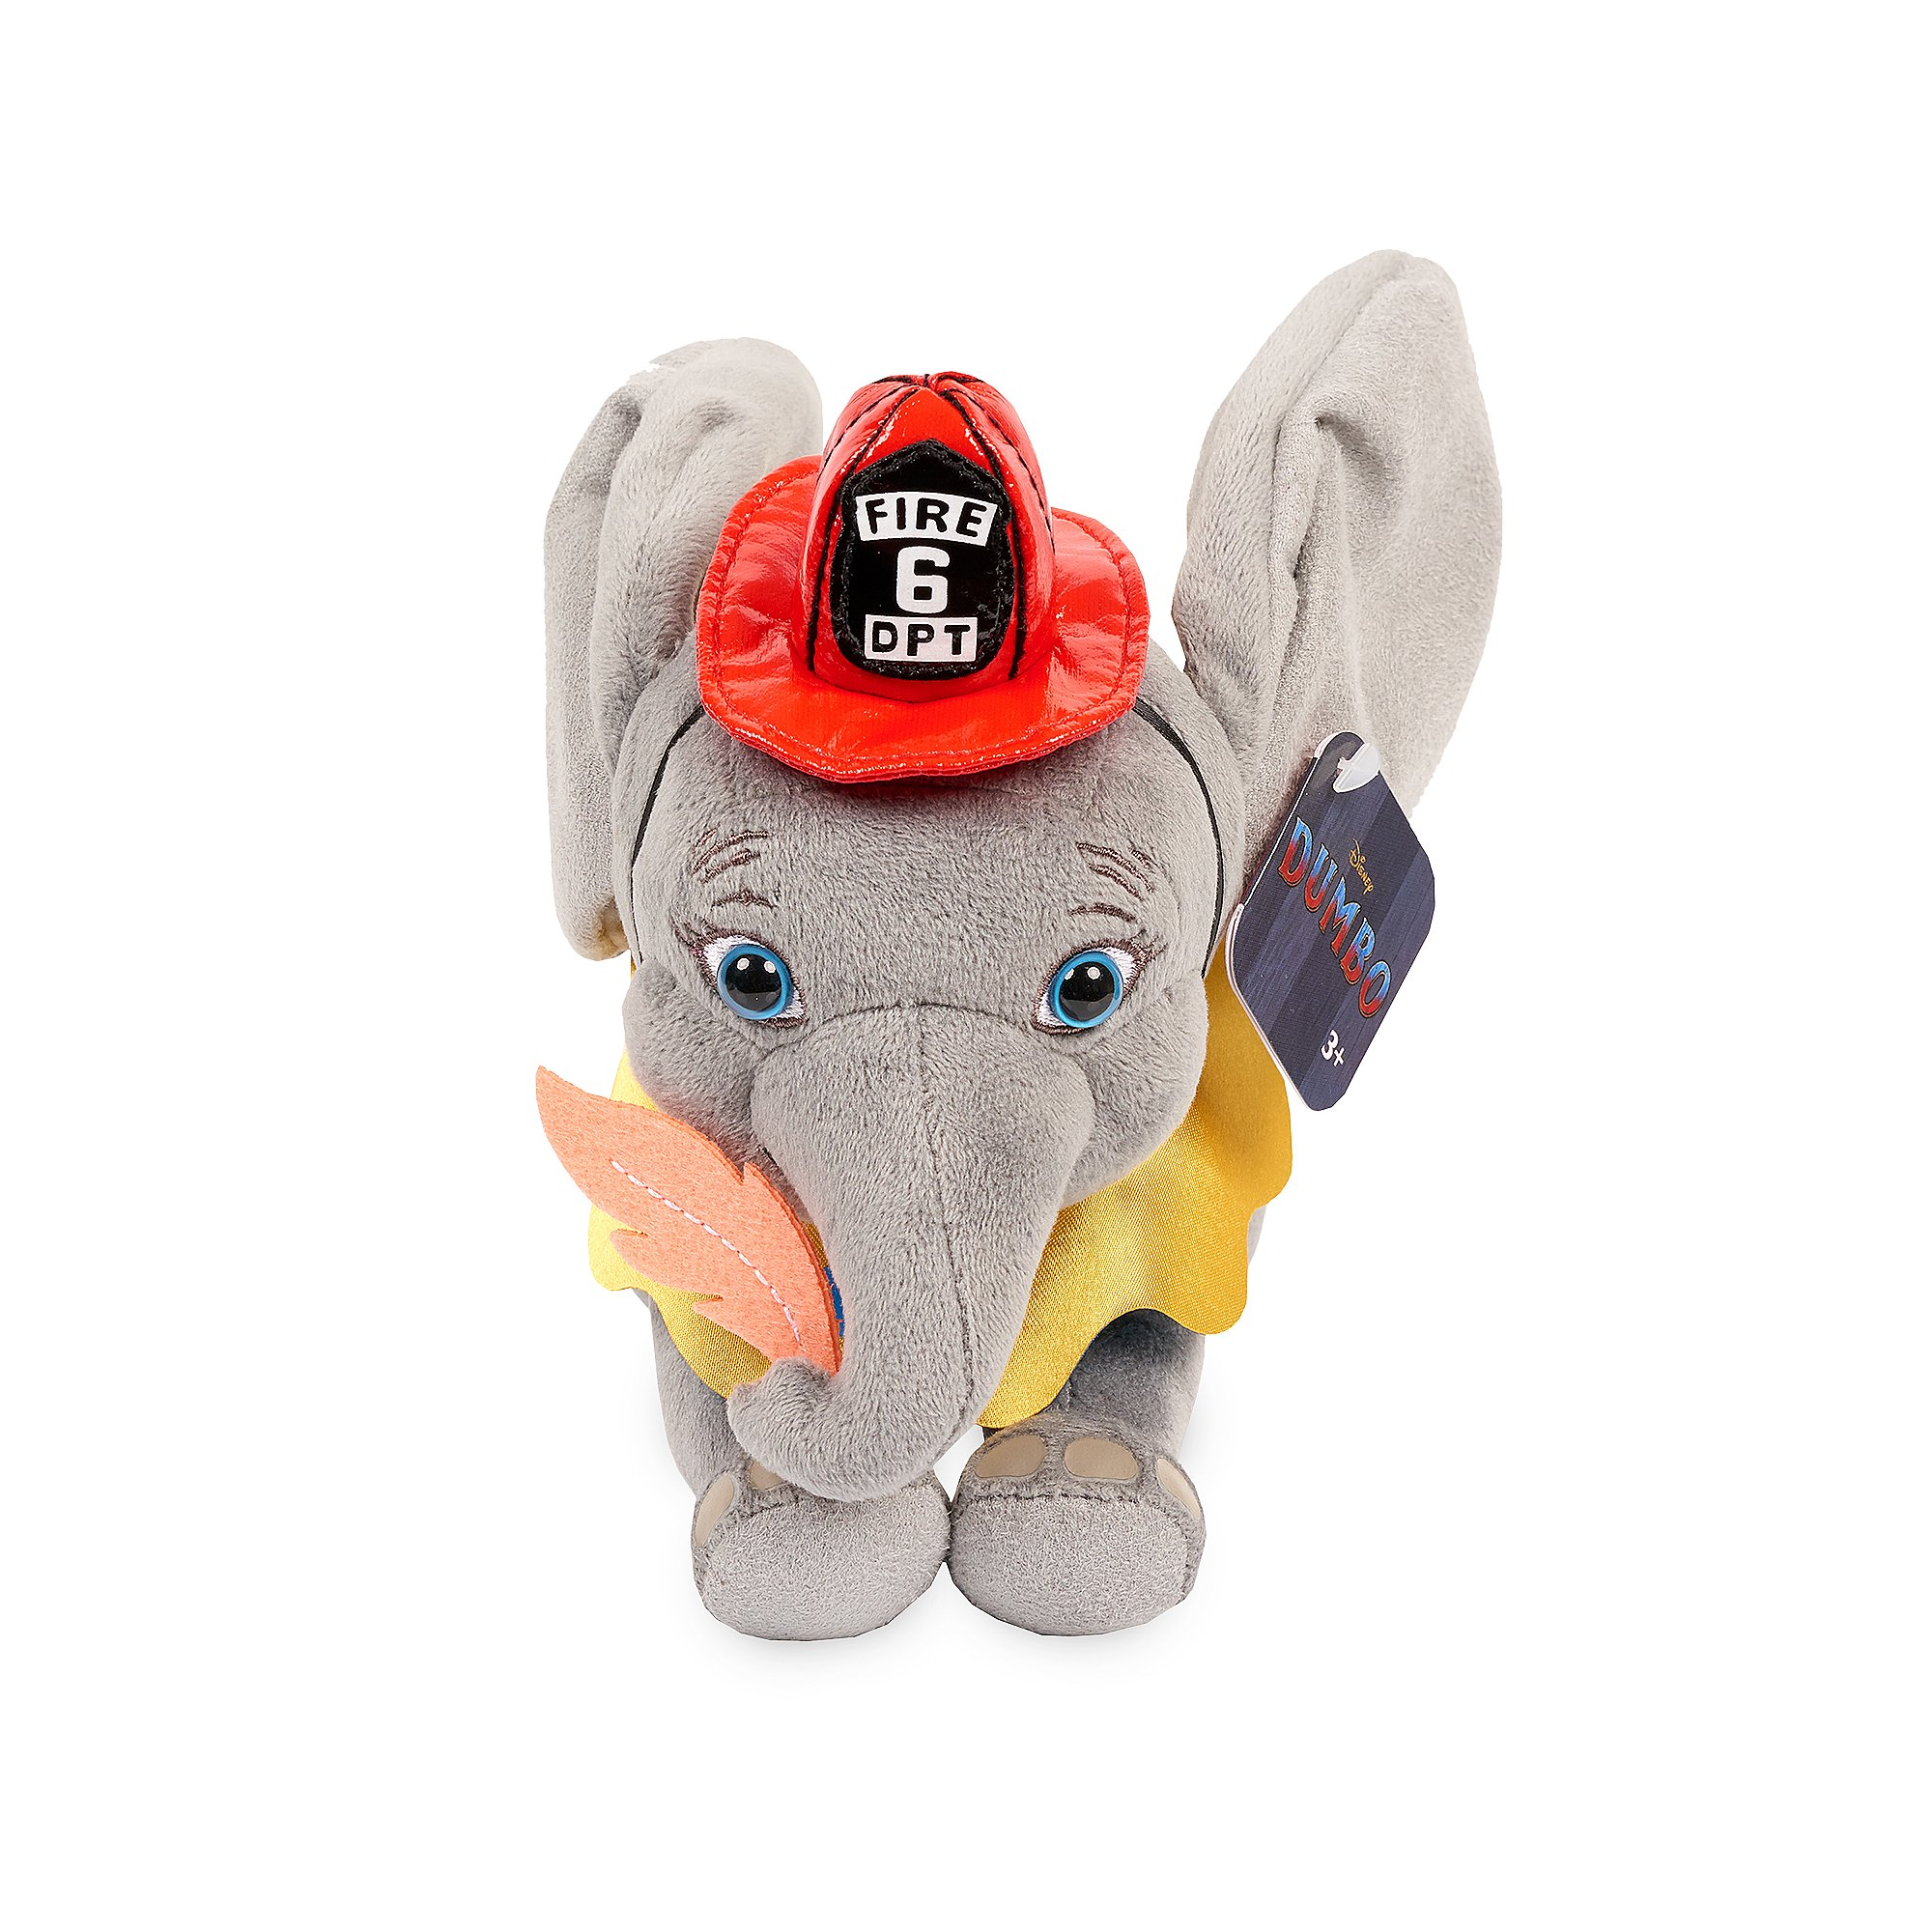 Disney Live Action Dumbo Small Dumbo Fireman Plush Soft Toy